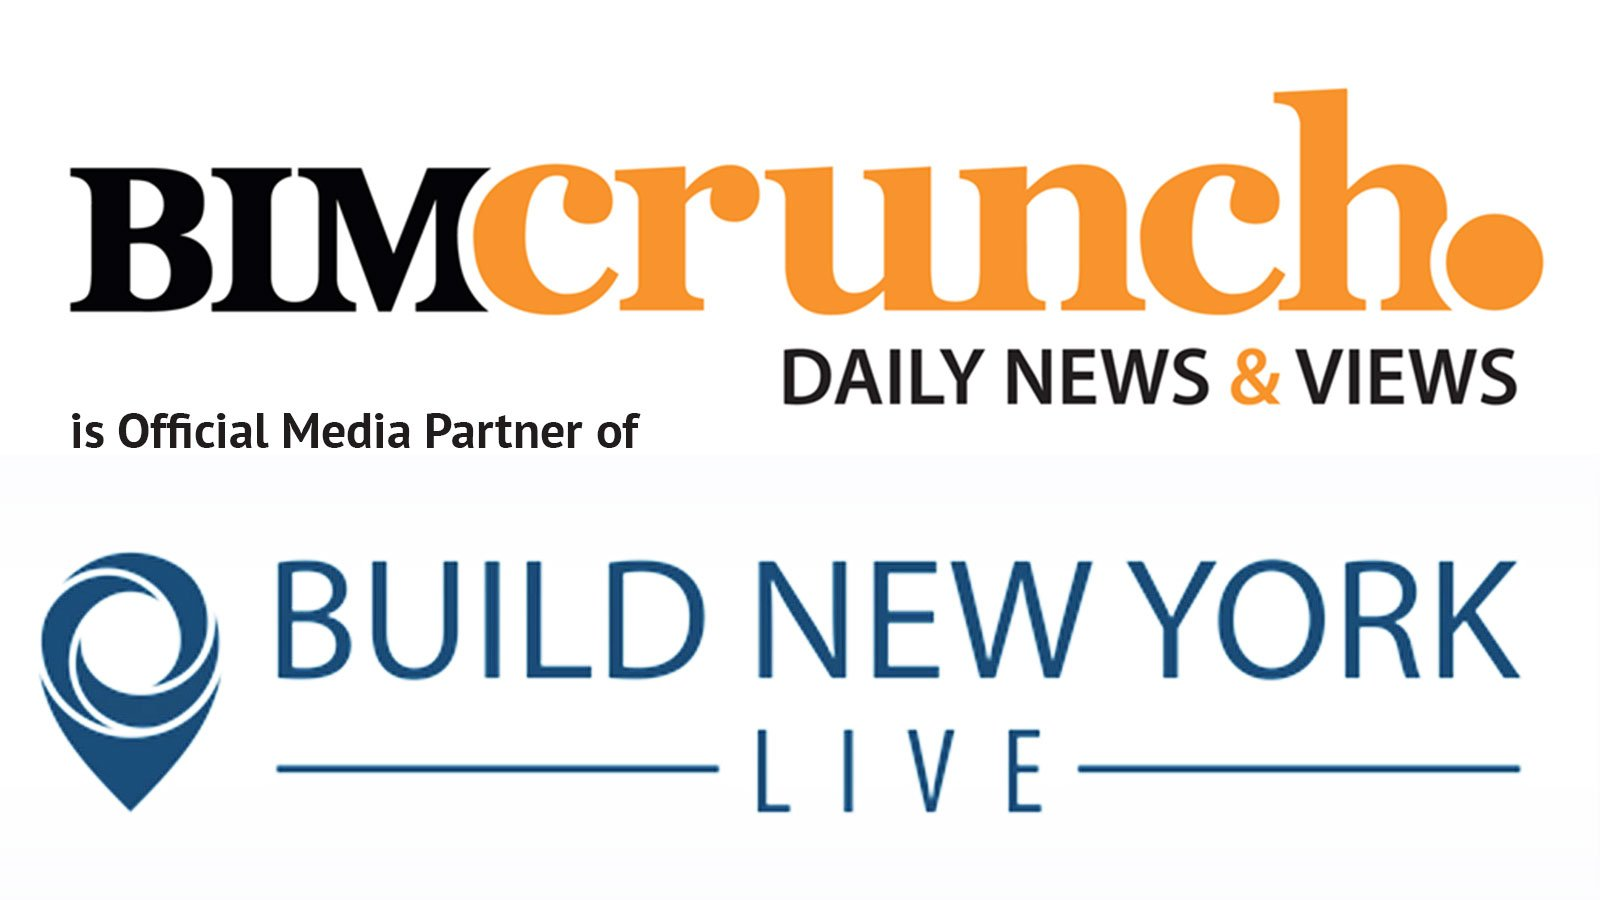 Build New York Live welcomes BIMcrunch on board as official media partner